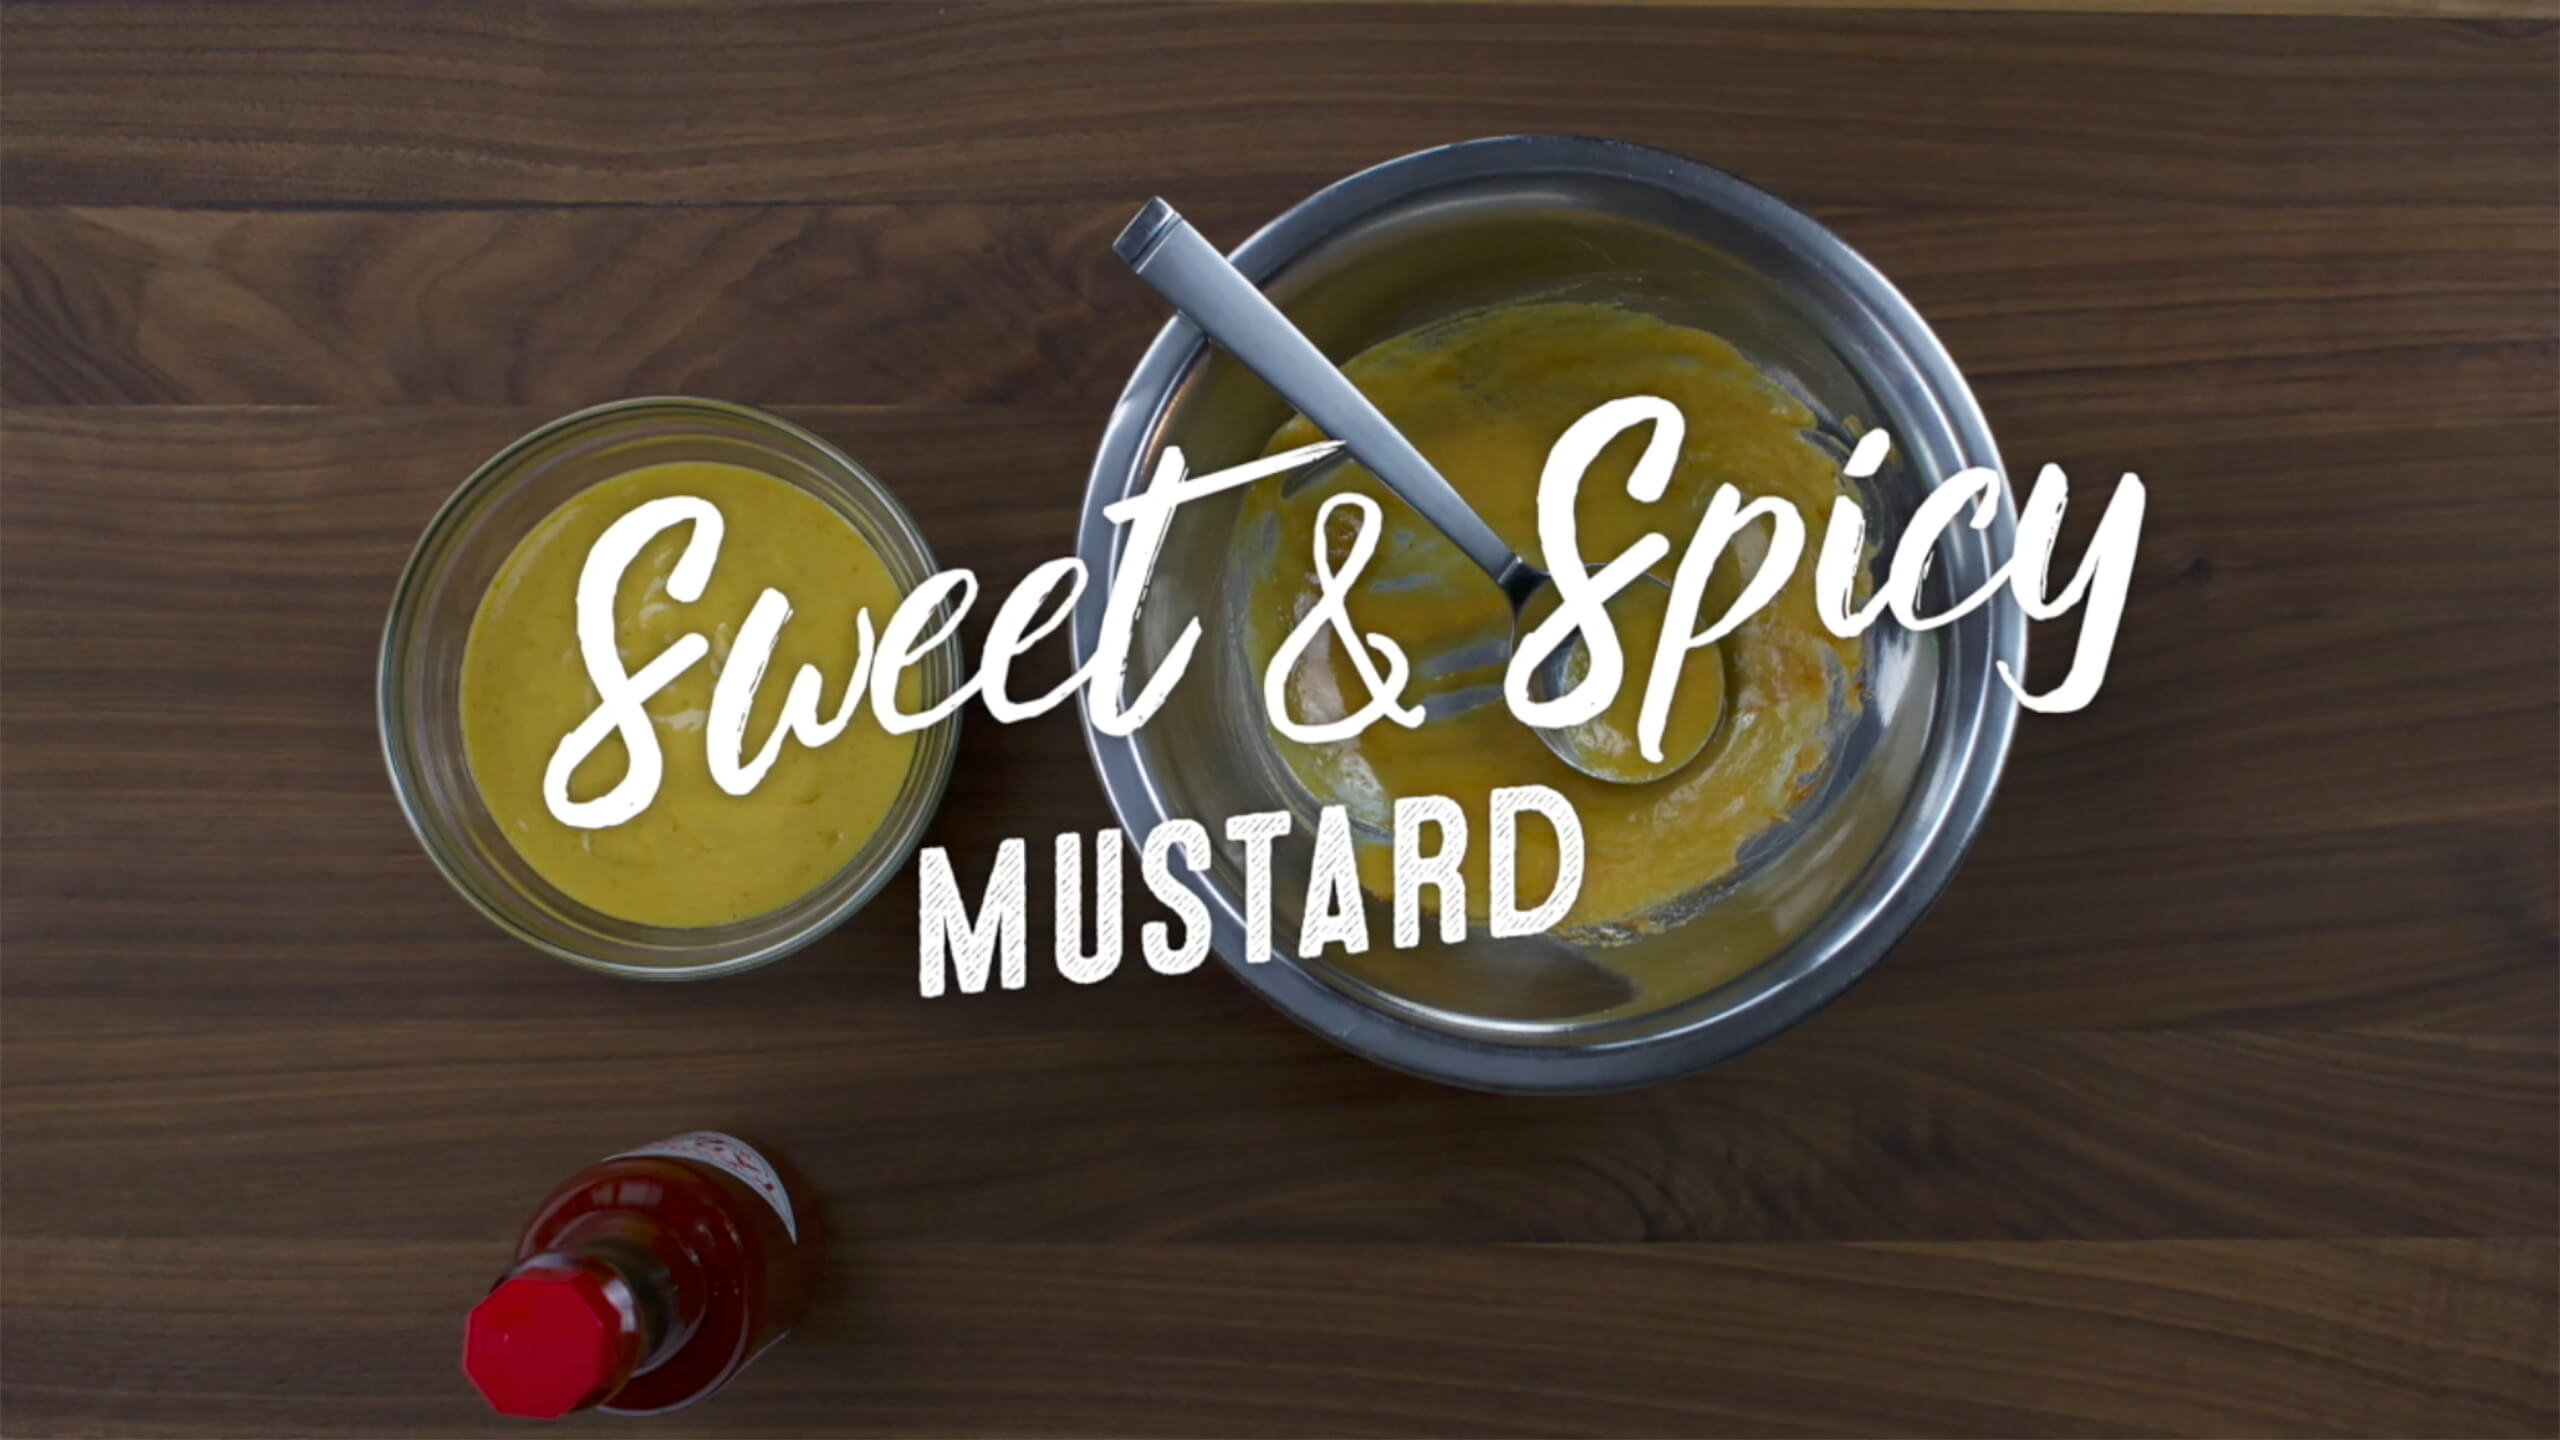 Sweet & Spicy Mustard Plus-One